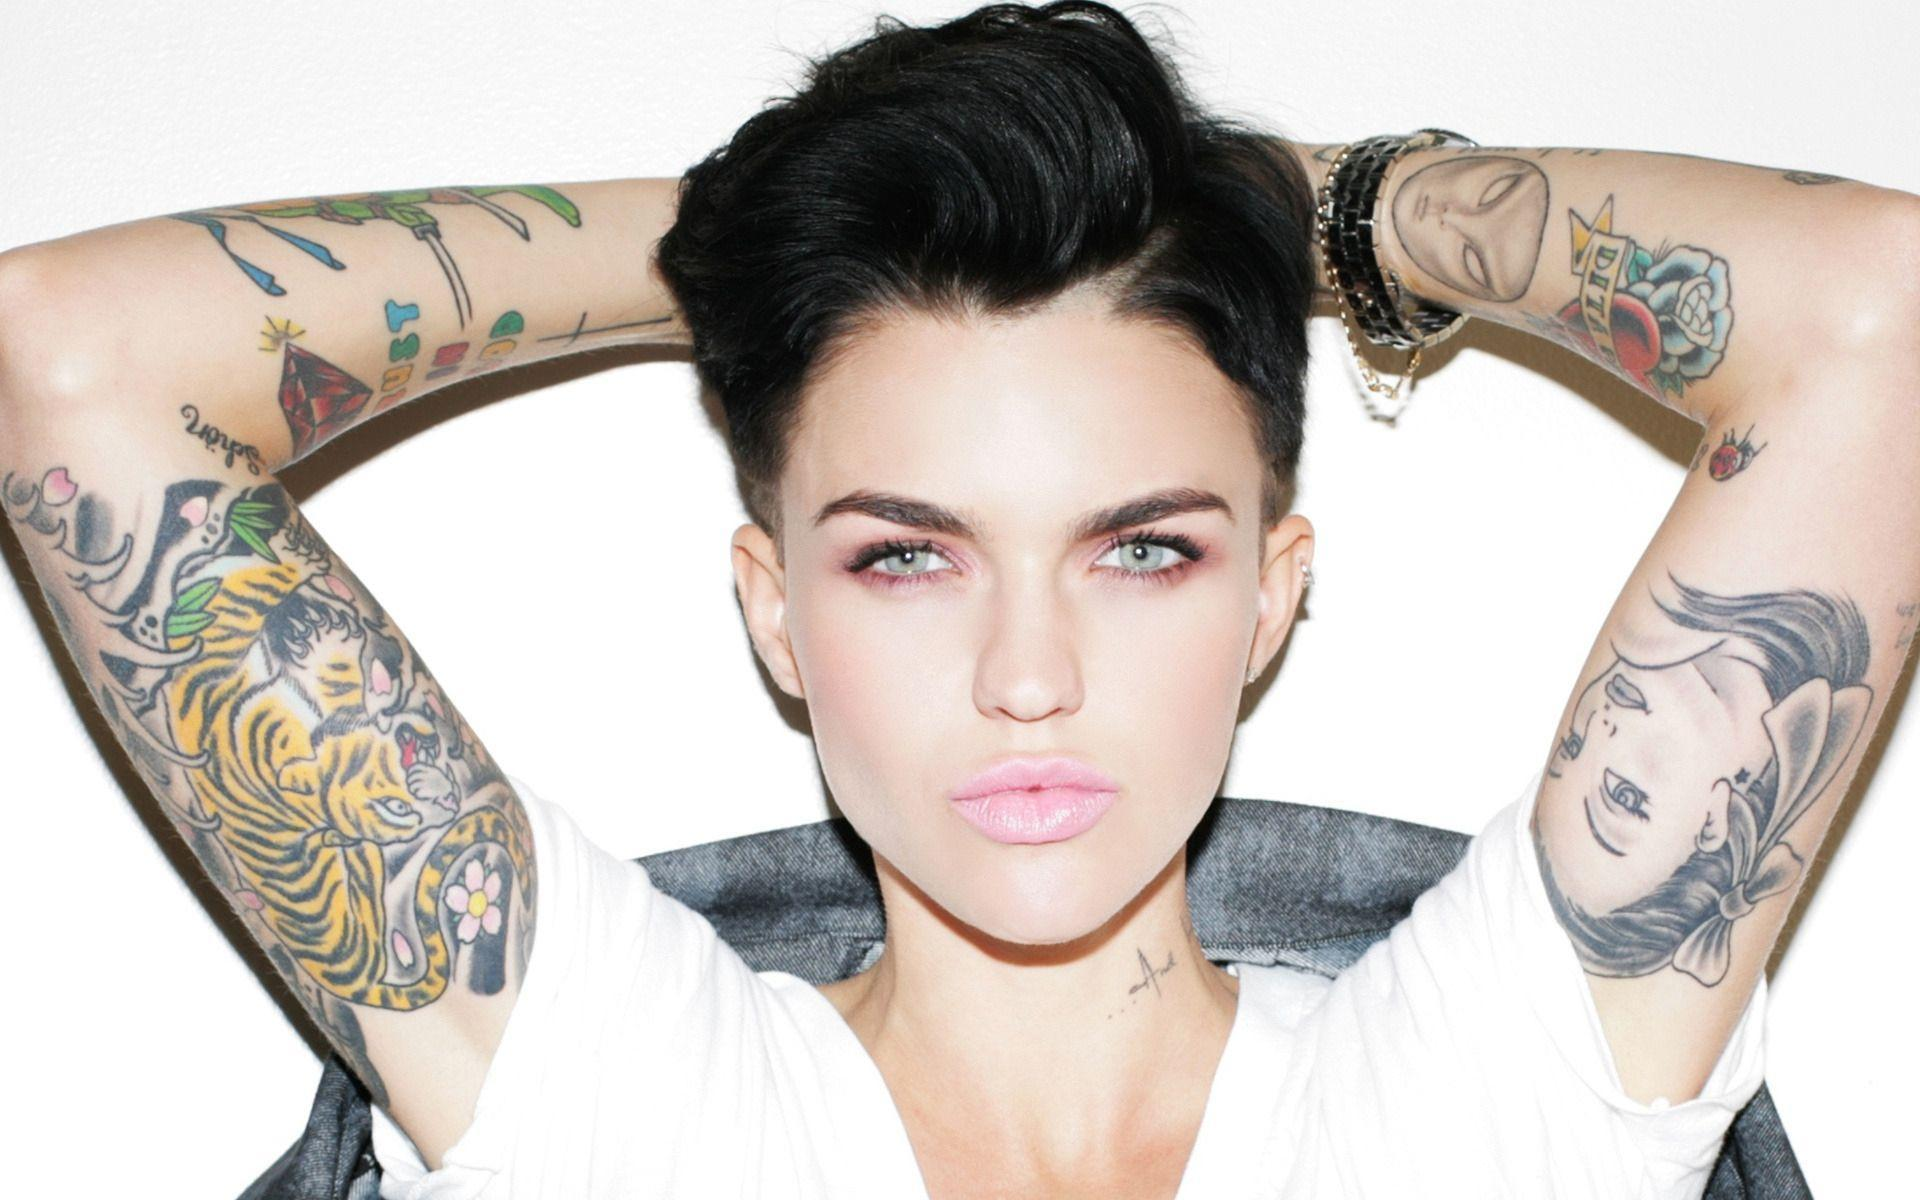 ecome An Expert Wallpaper Ruby Rose With 3D HD wallpapers